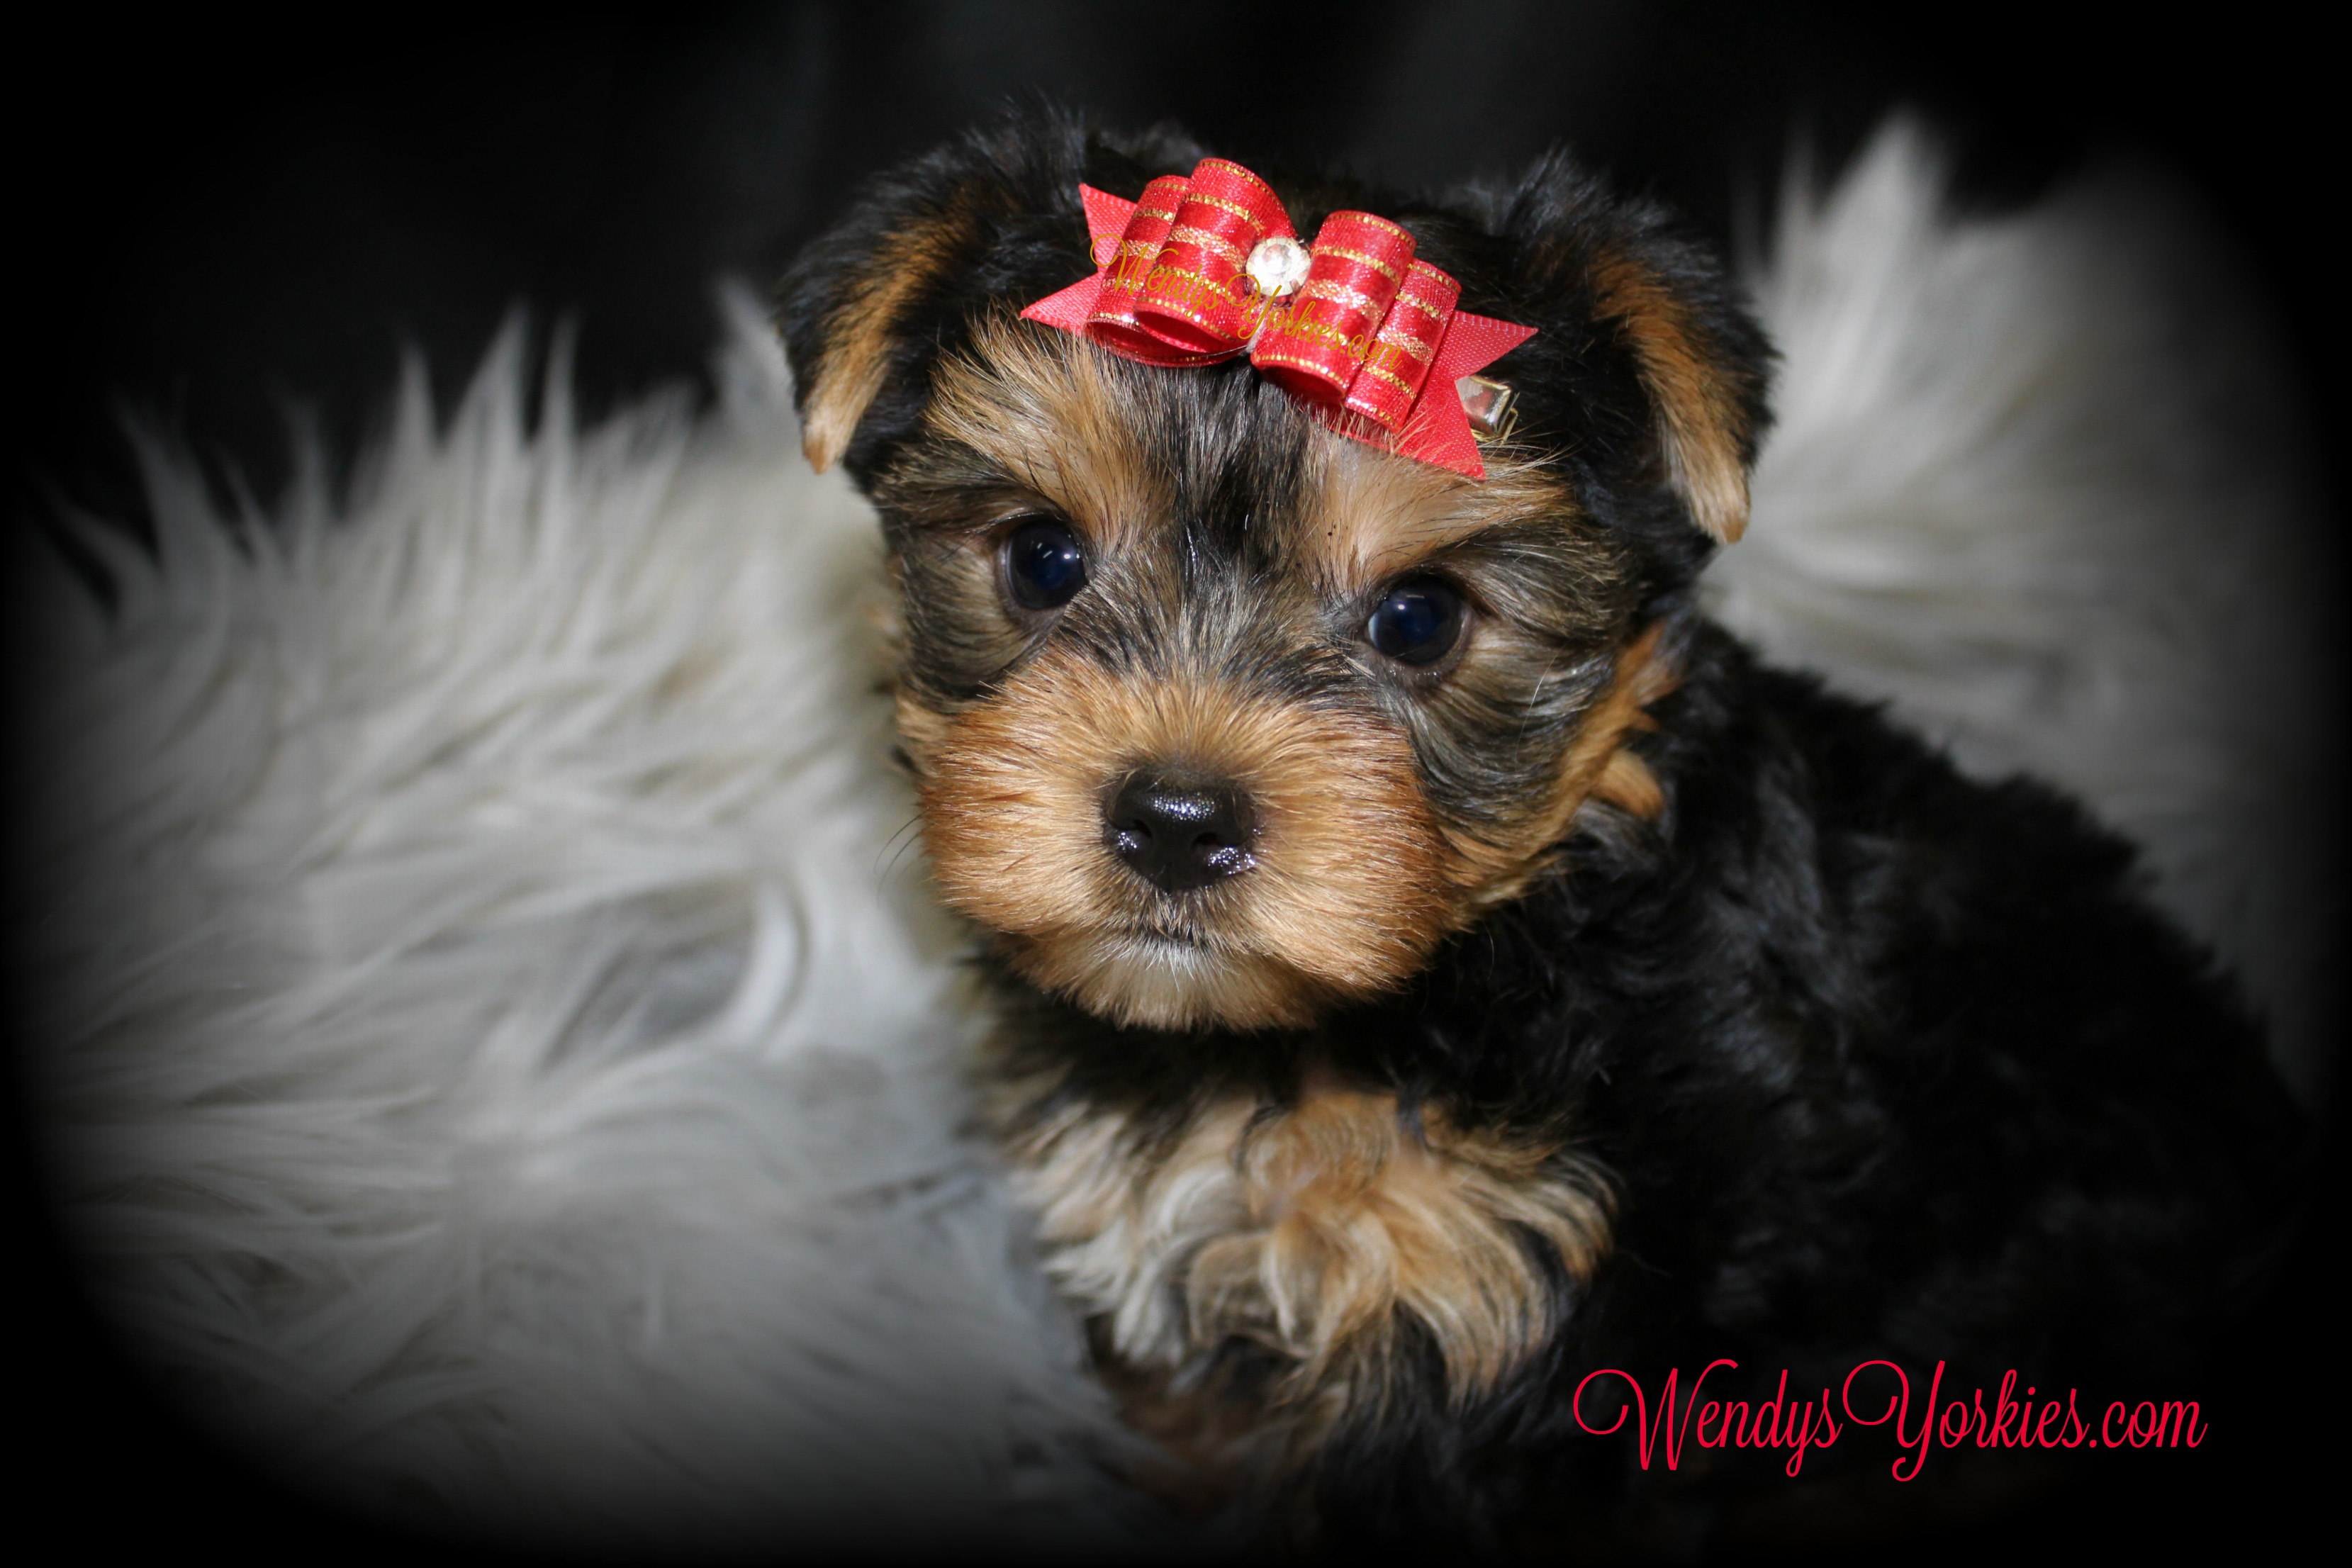 Male Yorkie puppy for sale, WendysYorkies.com, Gracem 1